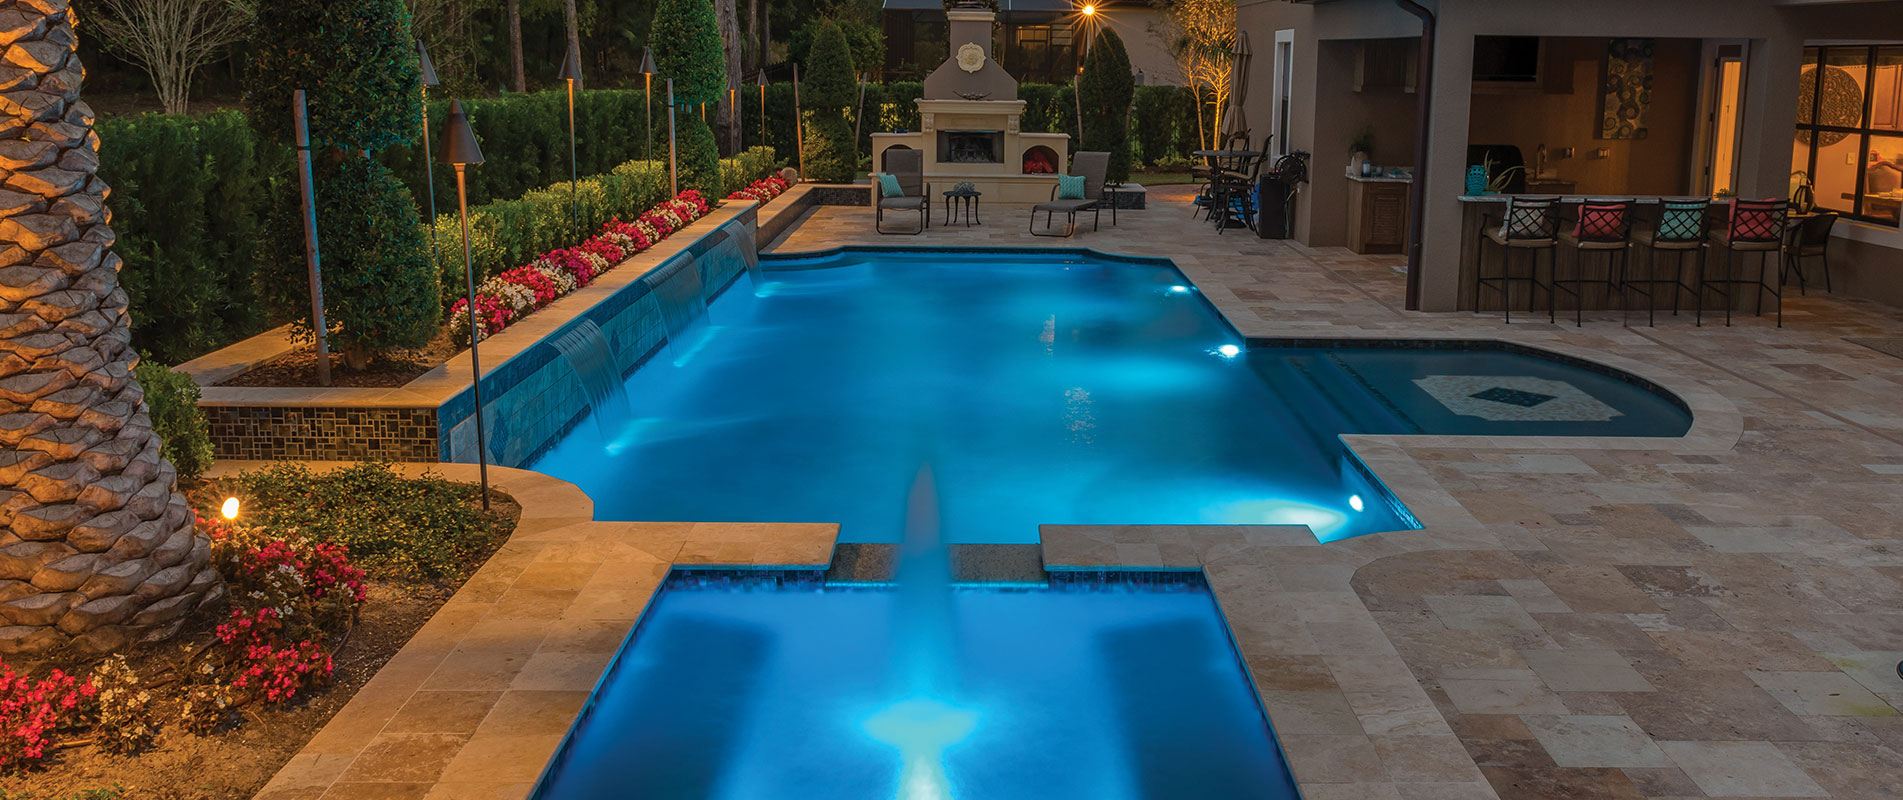 custom-pool-at-night